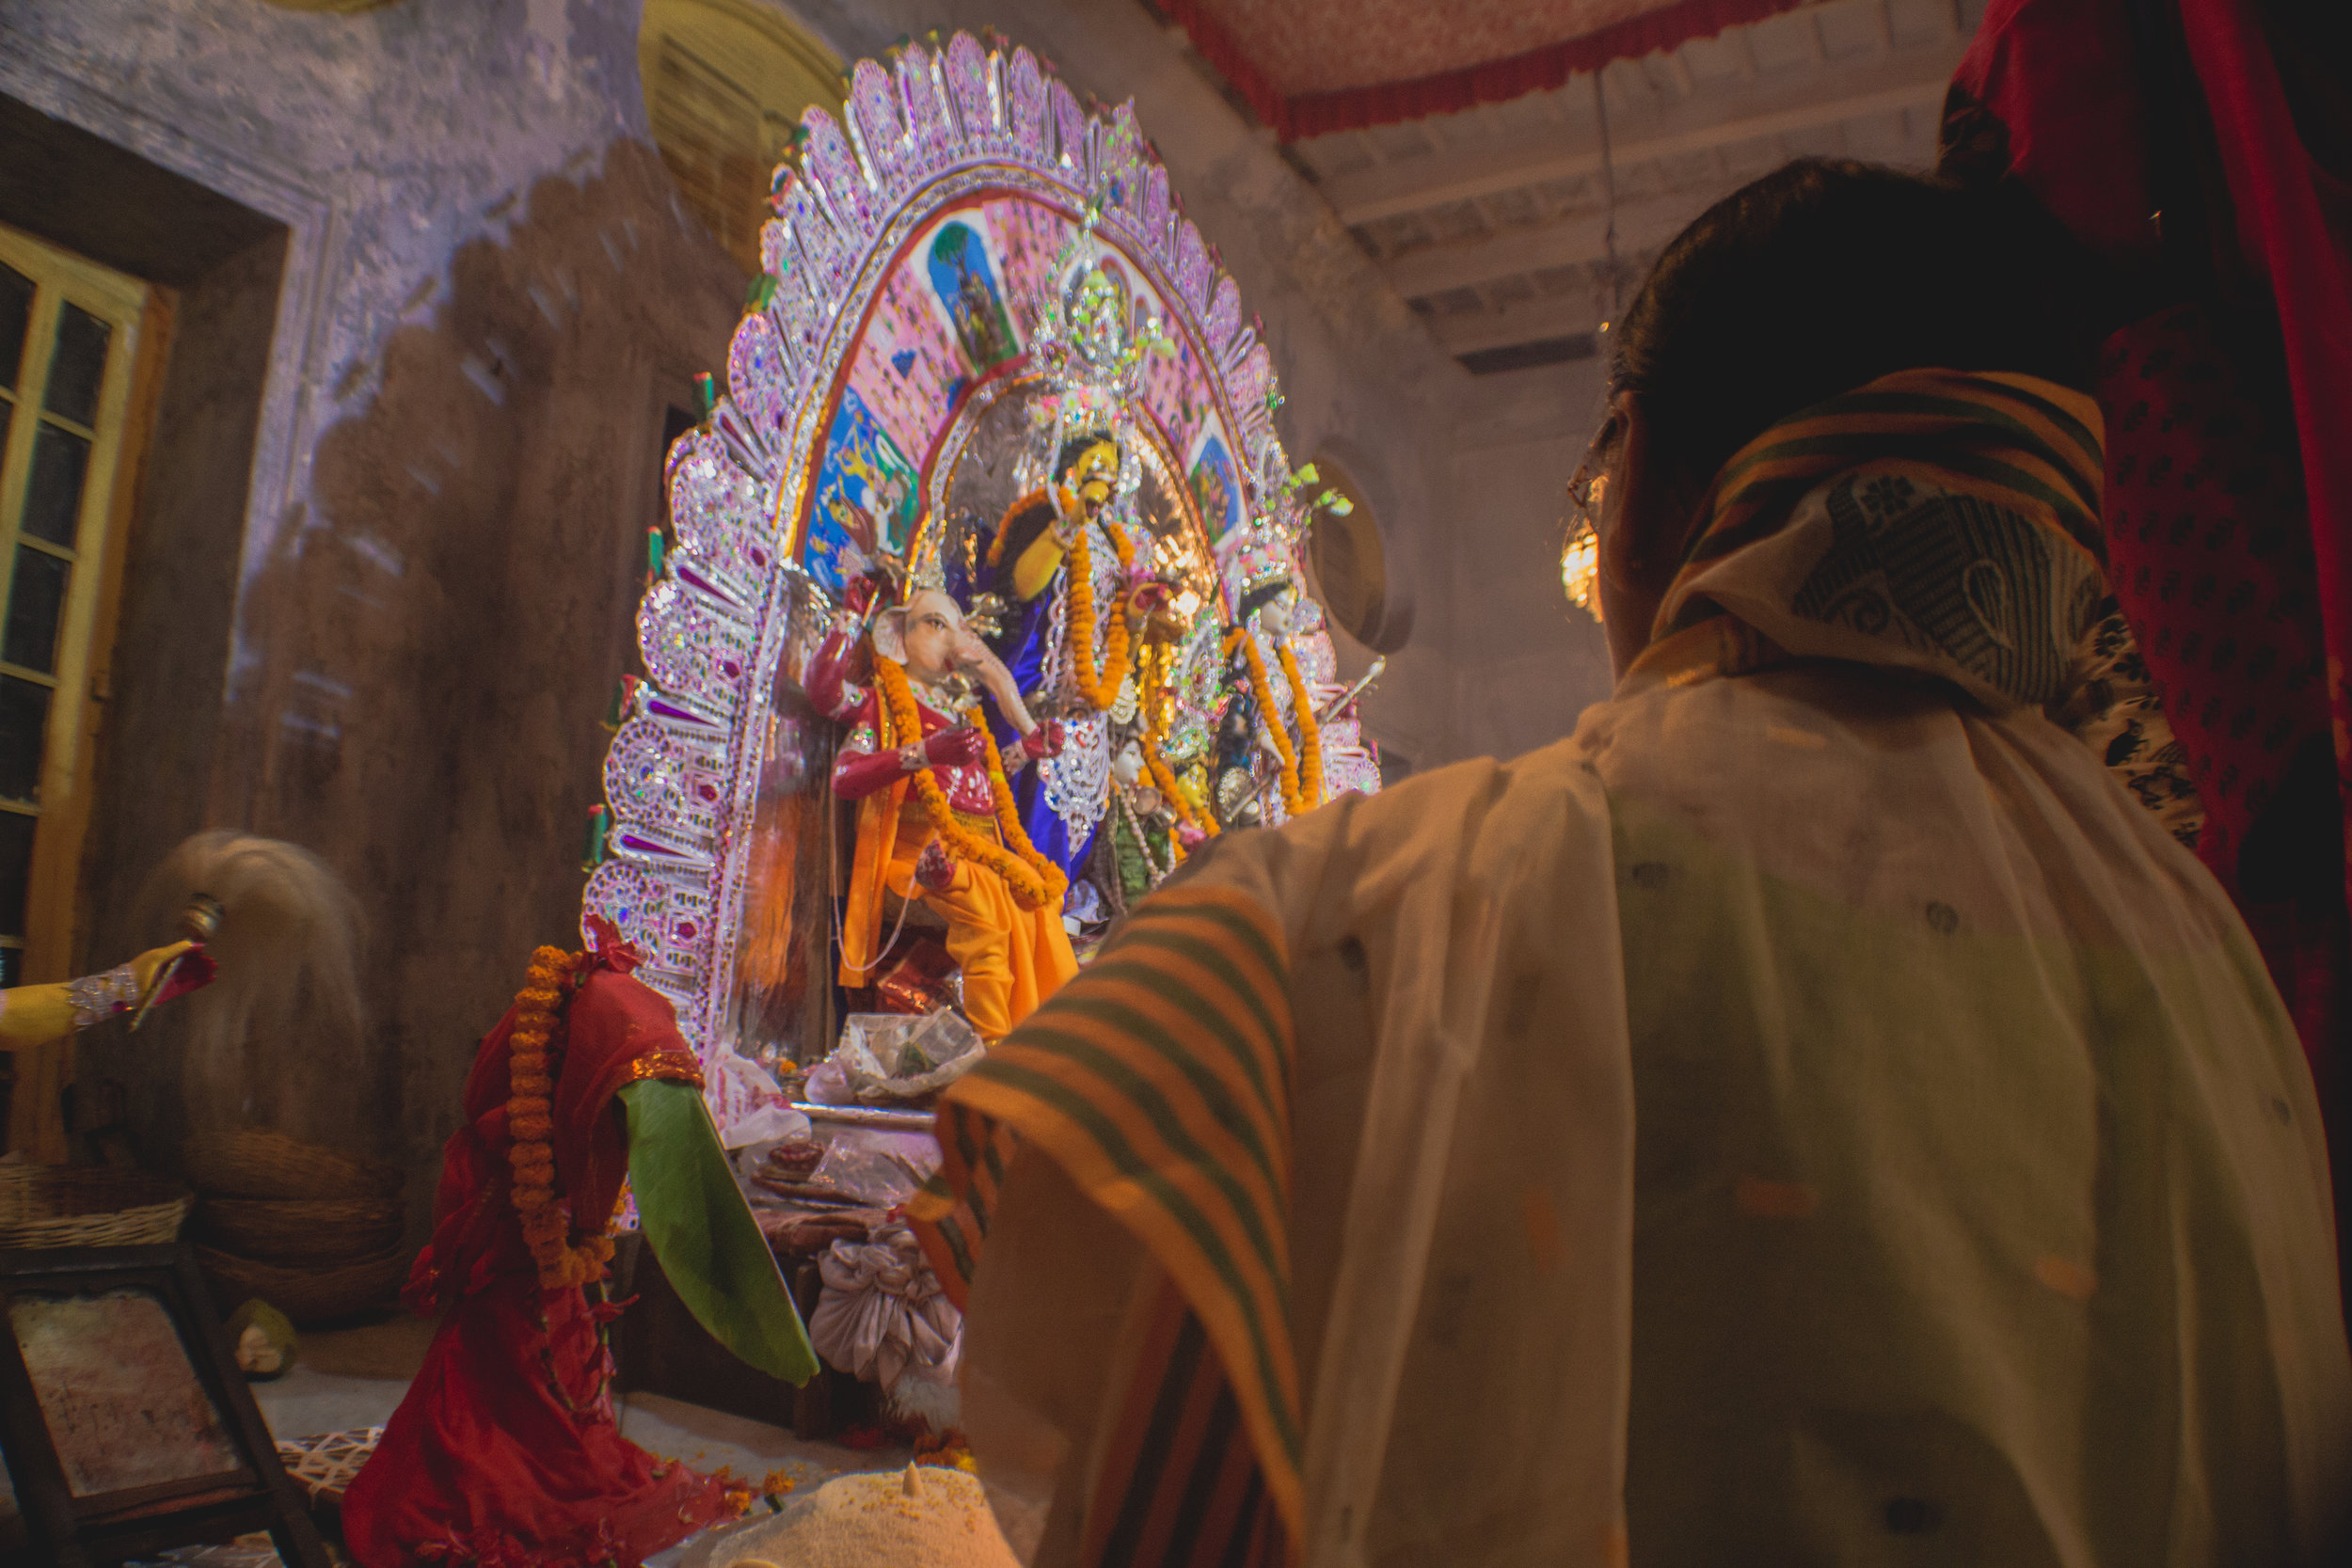 Durga Puja celebrations at the Mullick family house in Central Kolkata, a traditional ceremony that has been occurring for hundreds of years.